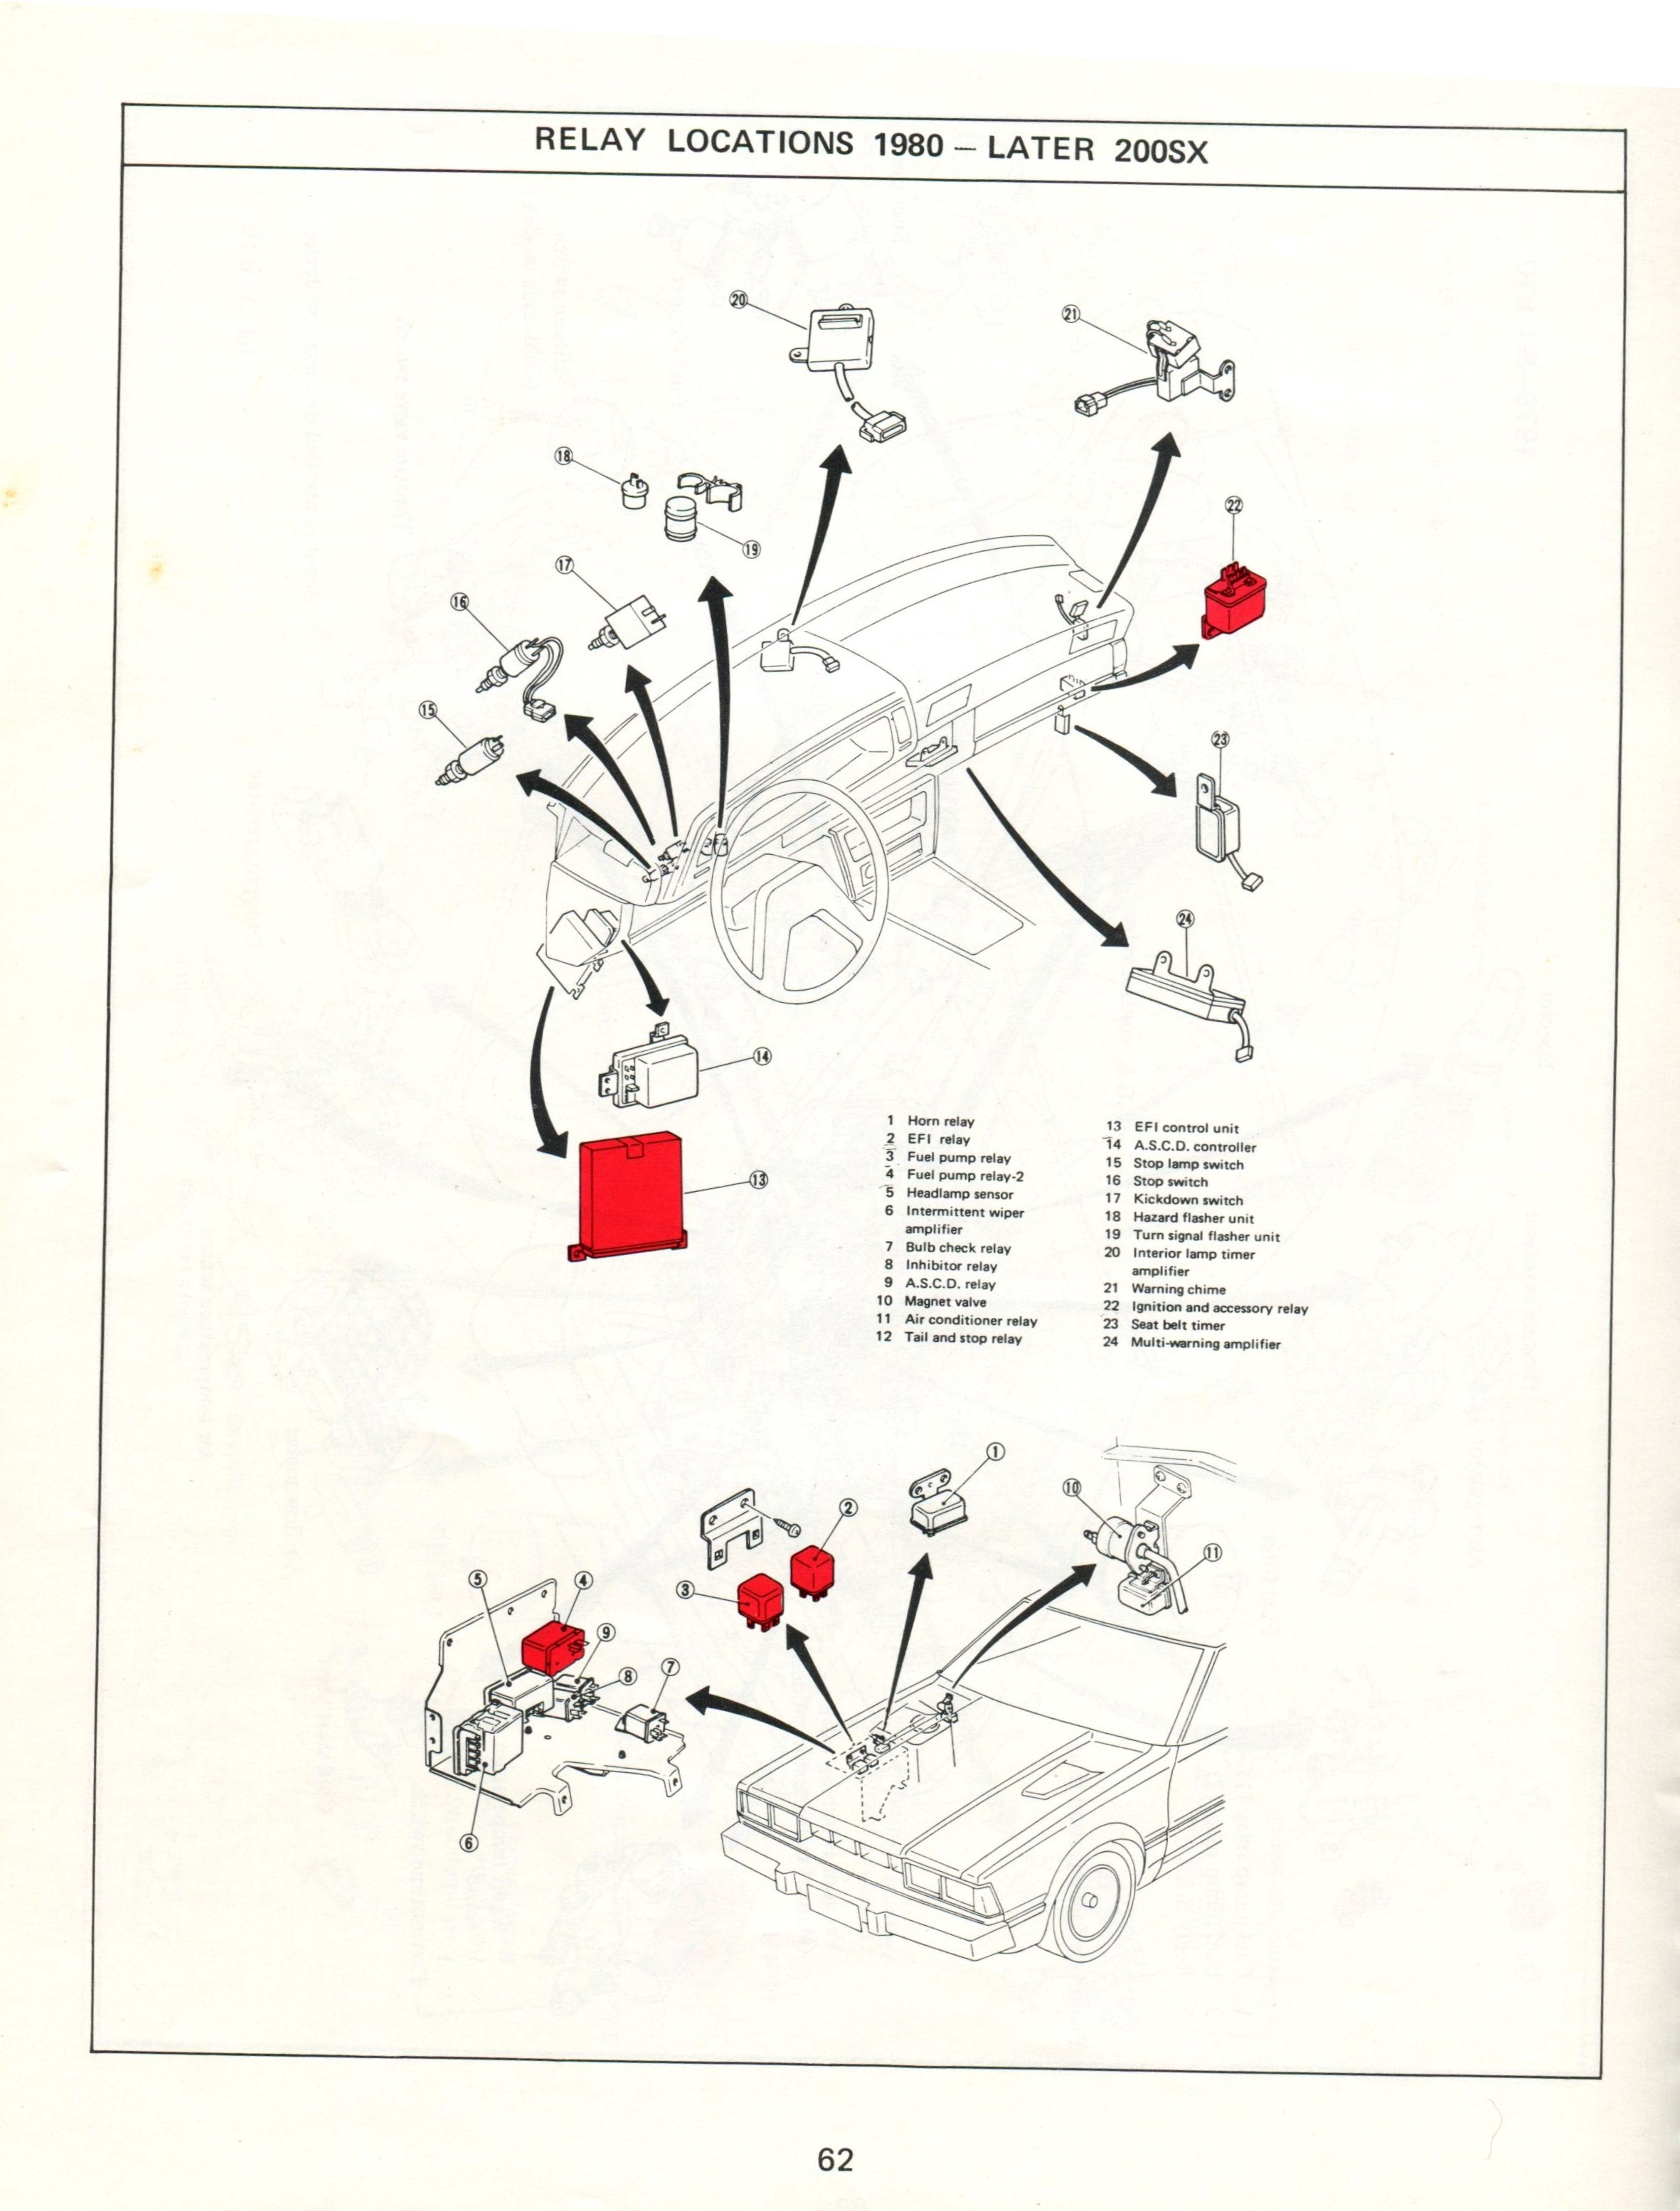 Datsun Electronic Fuel Injection